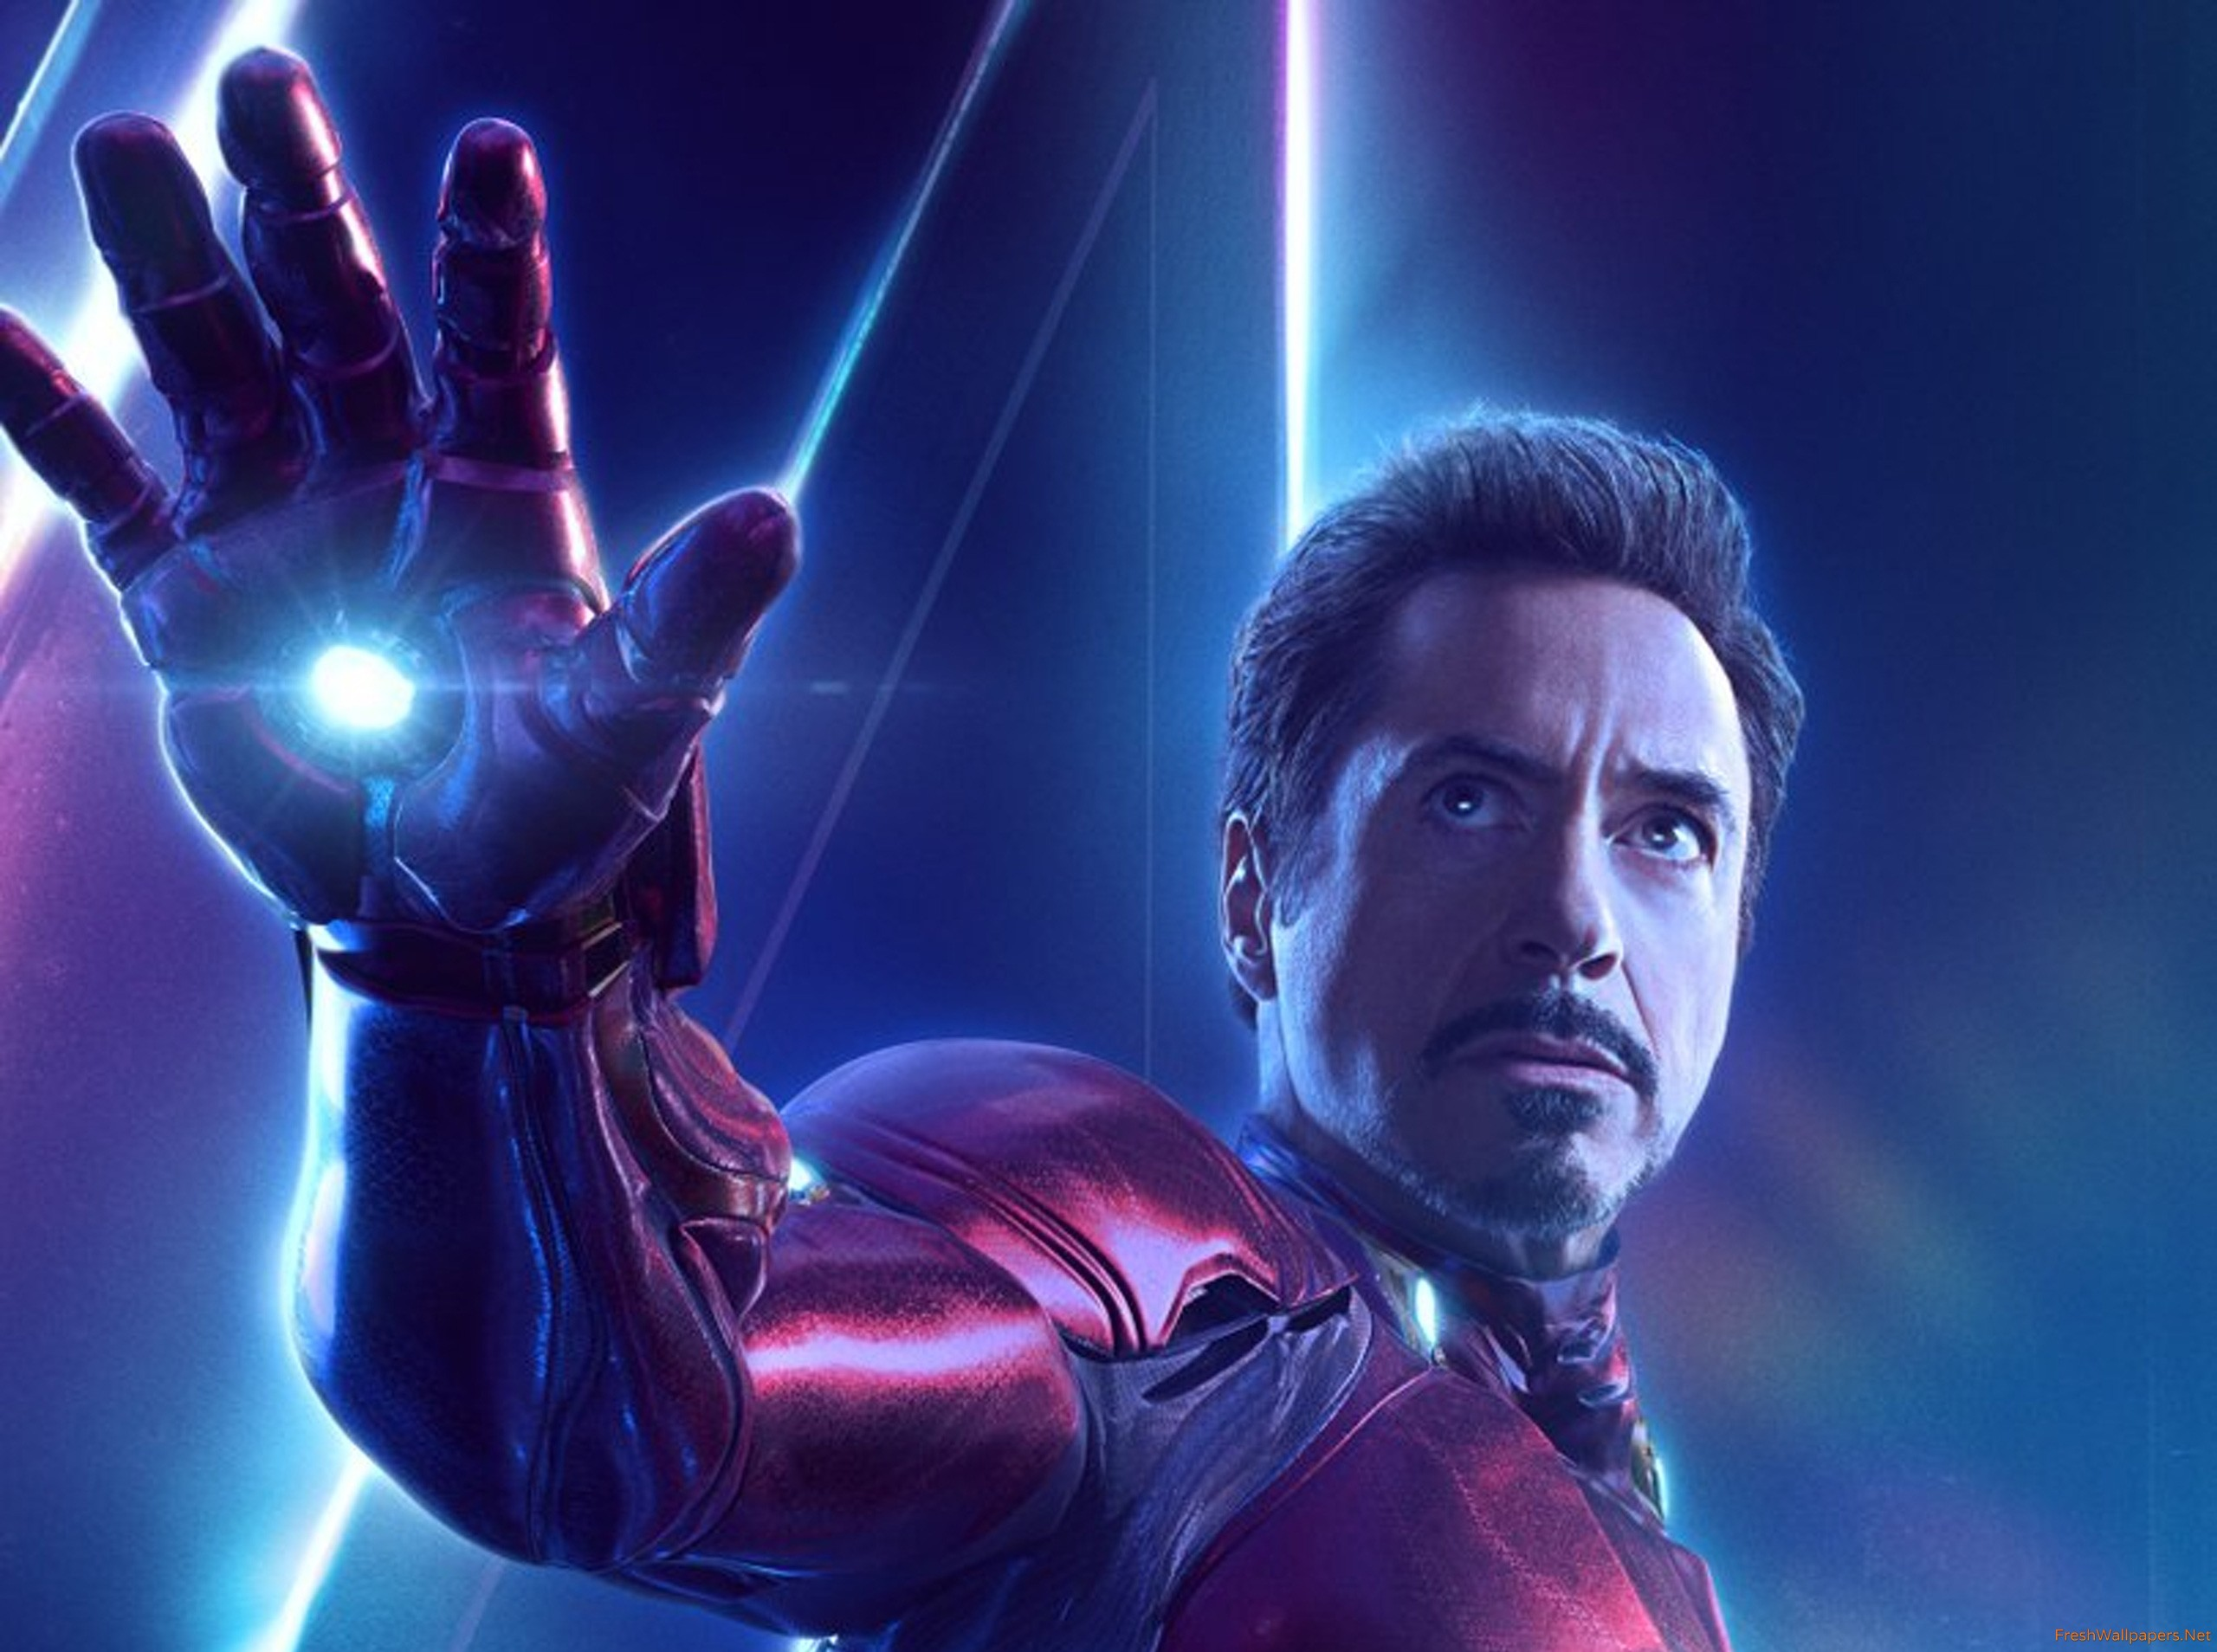 Download Wallpaper Iron Man Avengers Hd Cikimmcom